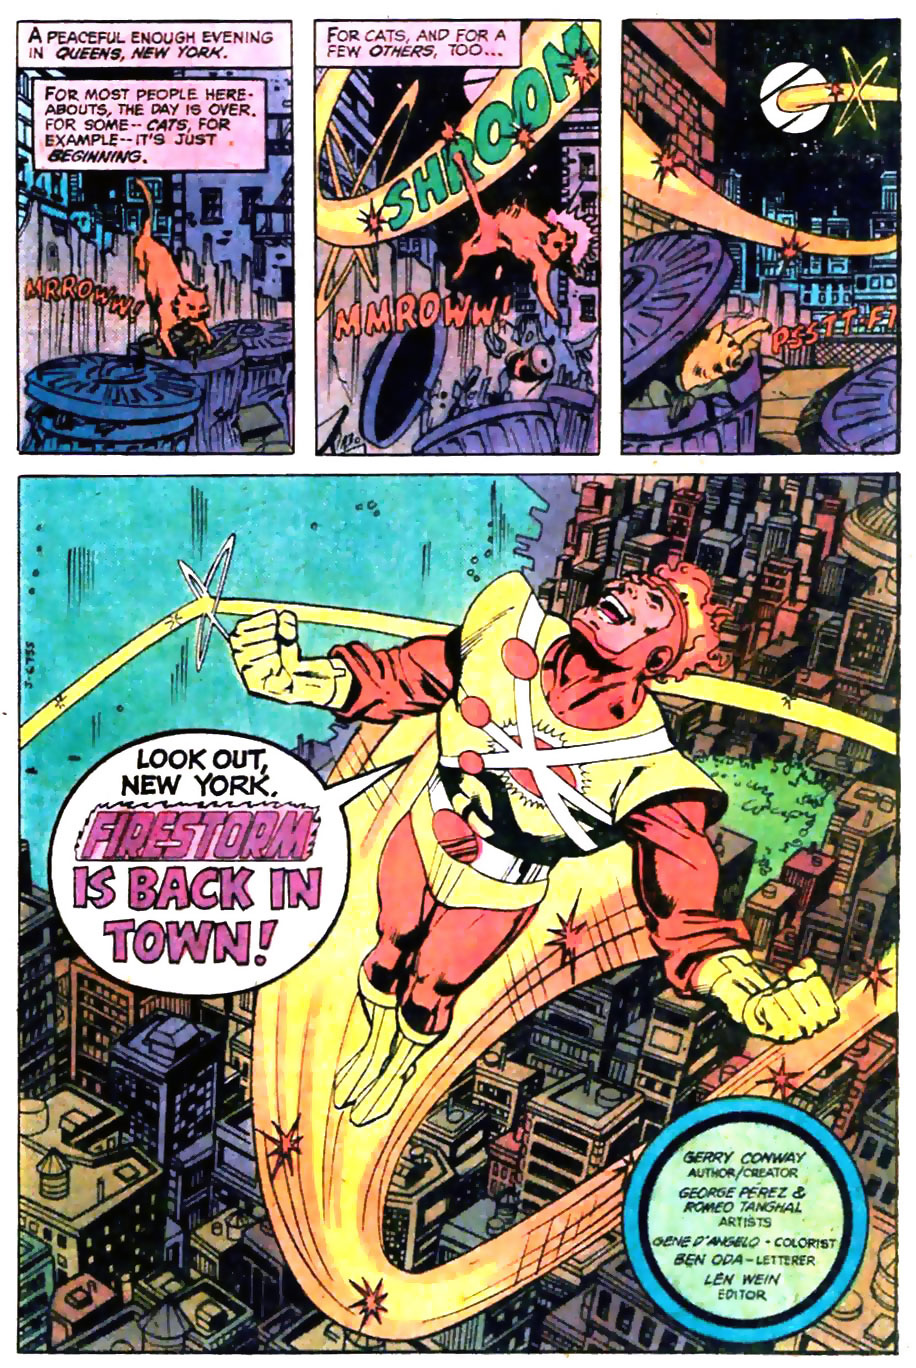 THE FLASH #289 & 290 (1980), by Gerry Conway and George Perez